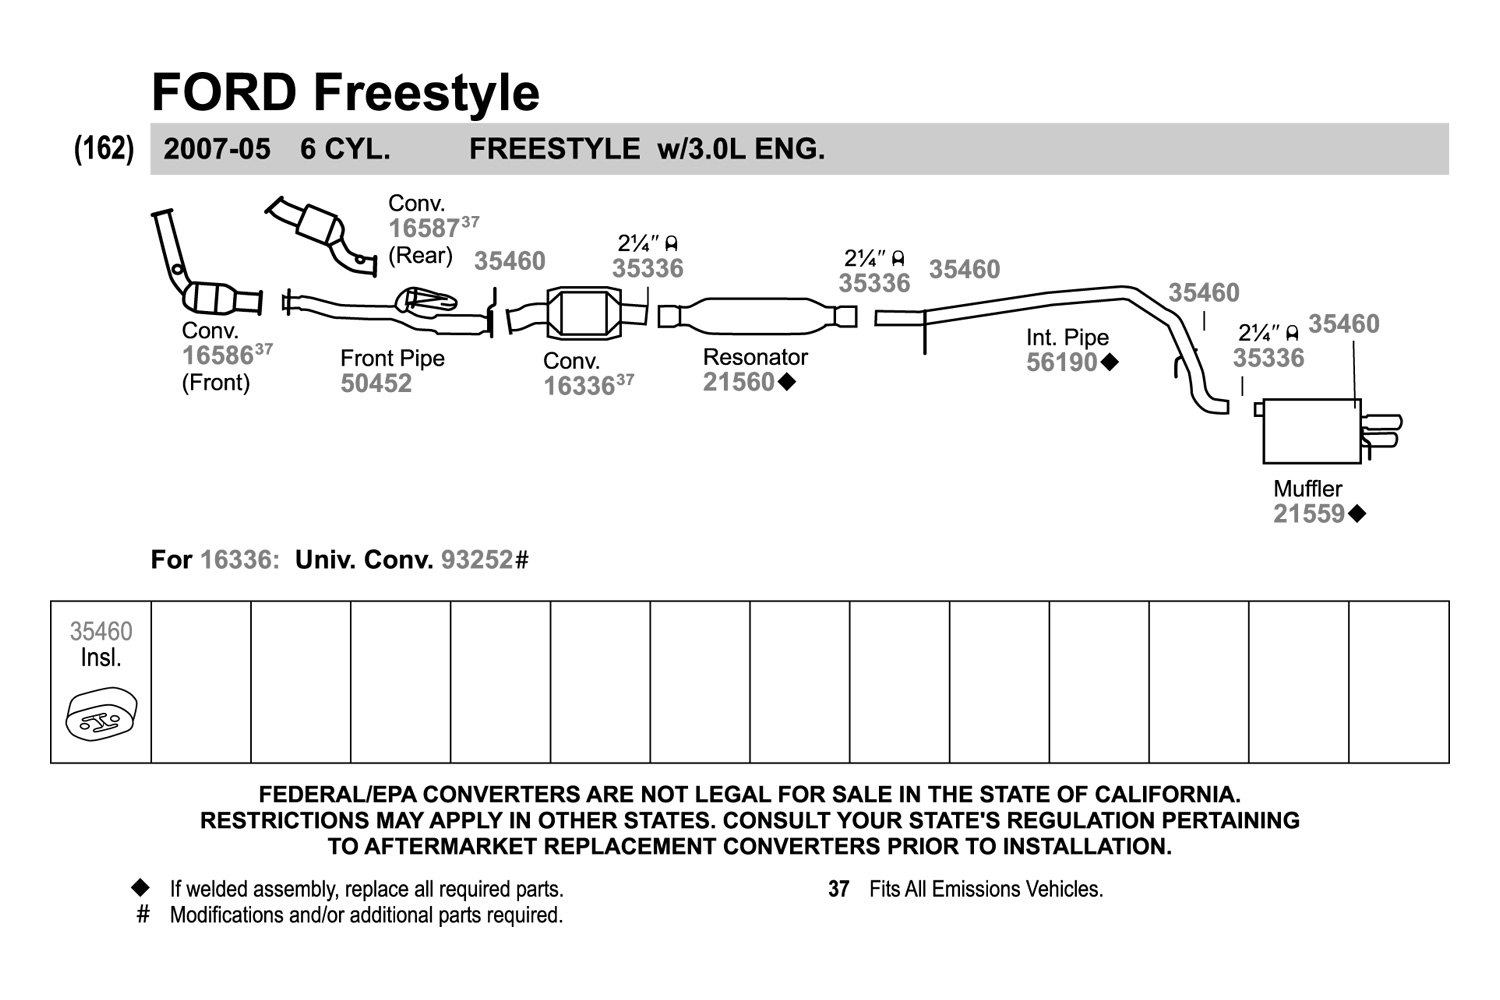 Ford Freestyle 2005